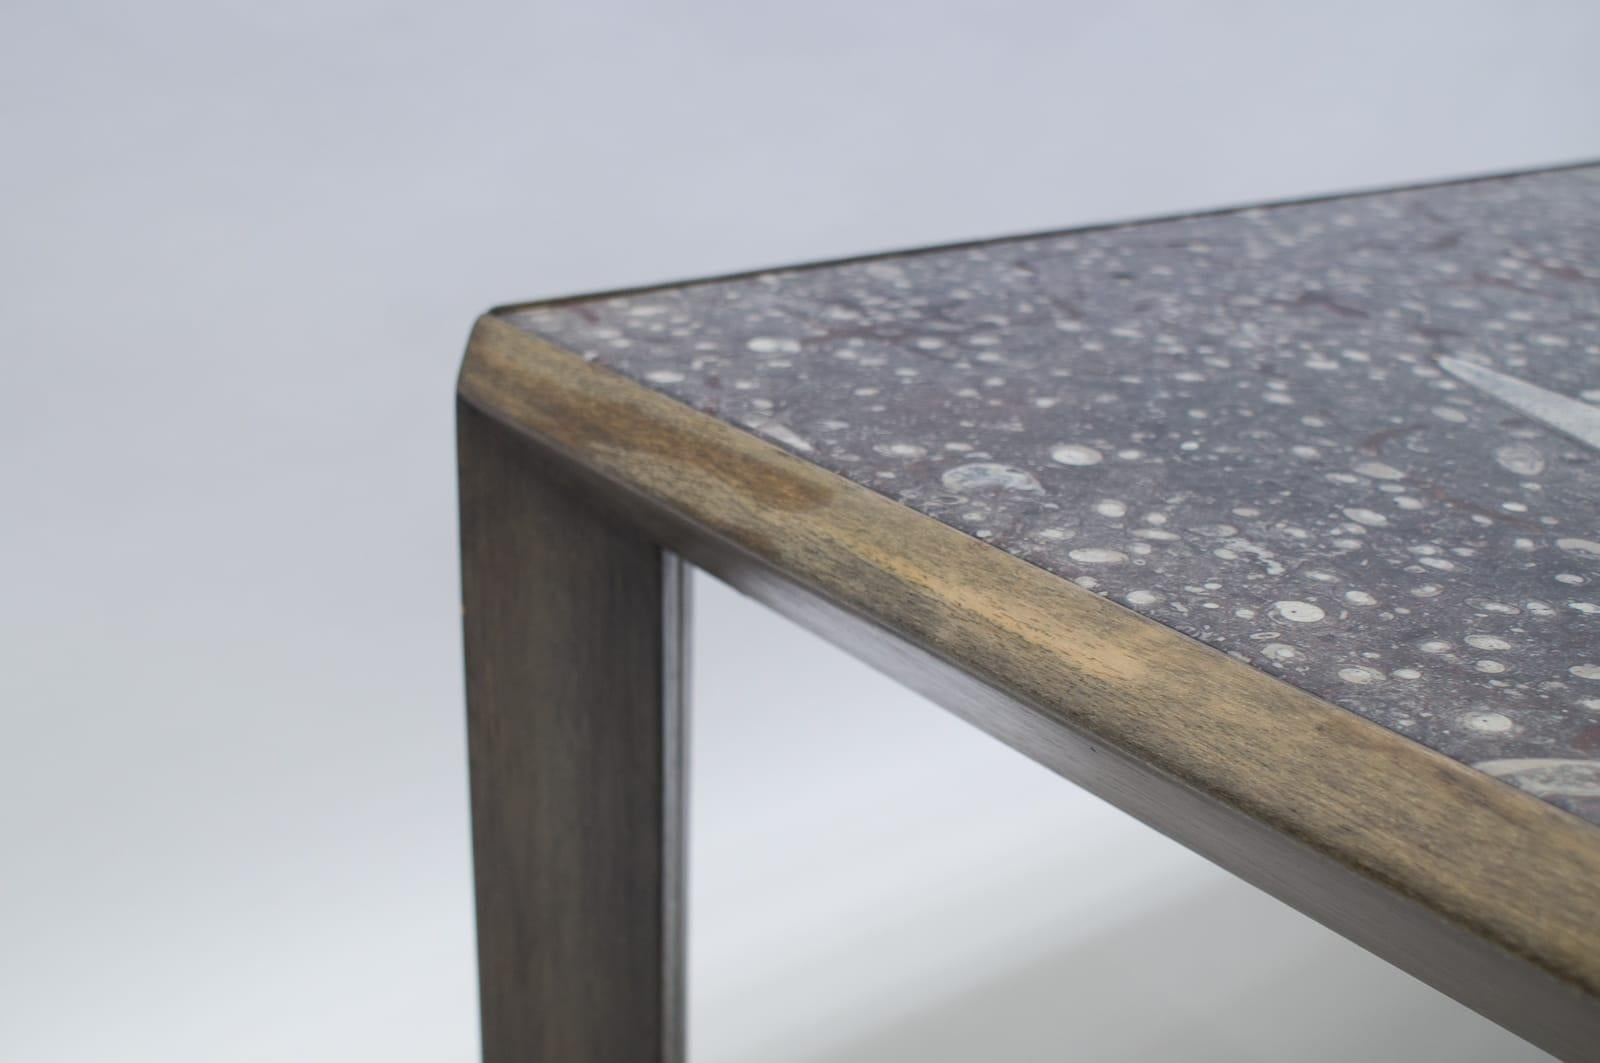 Midcentury Coffee Table By Ronald Schmitt With Fossil Tabletop 1960s Germany For Sale At 1stdibs